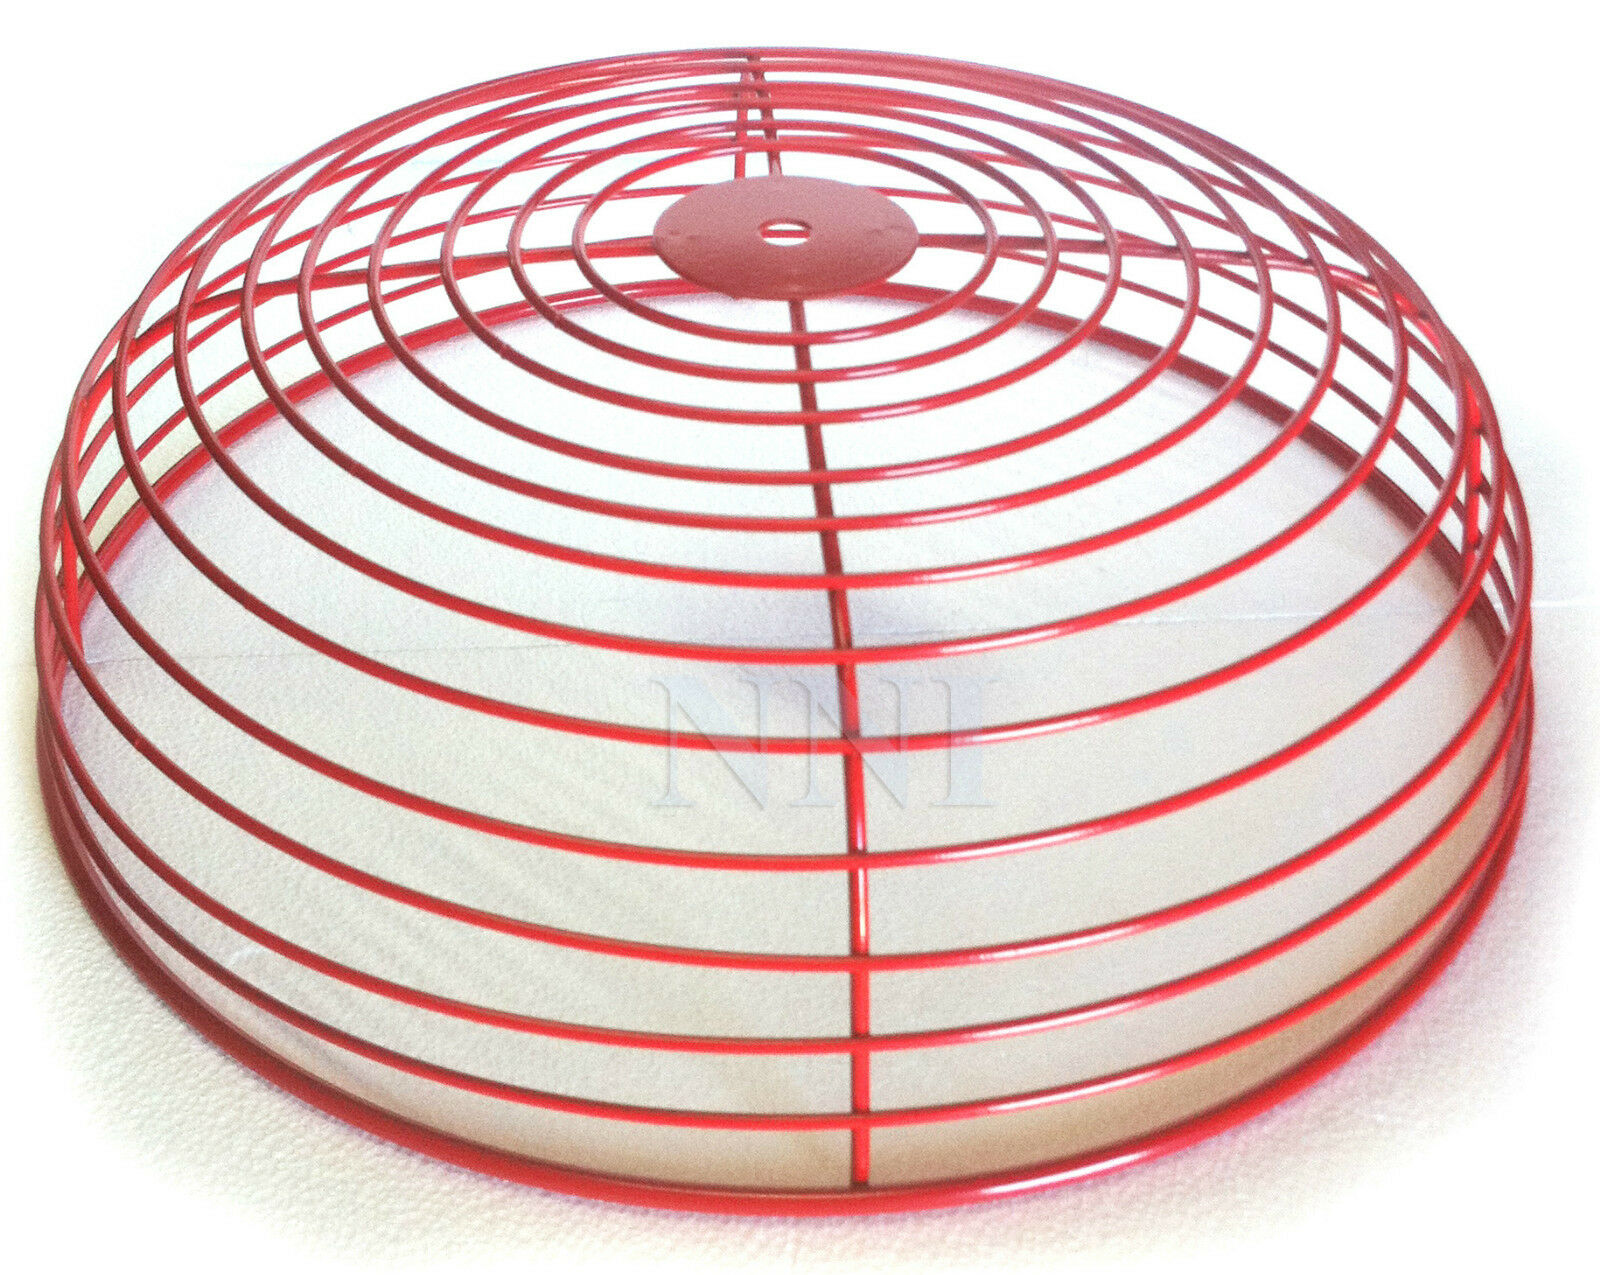 Fire Alarm Bell Guard Protector Wire Cage Red 12 Dia